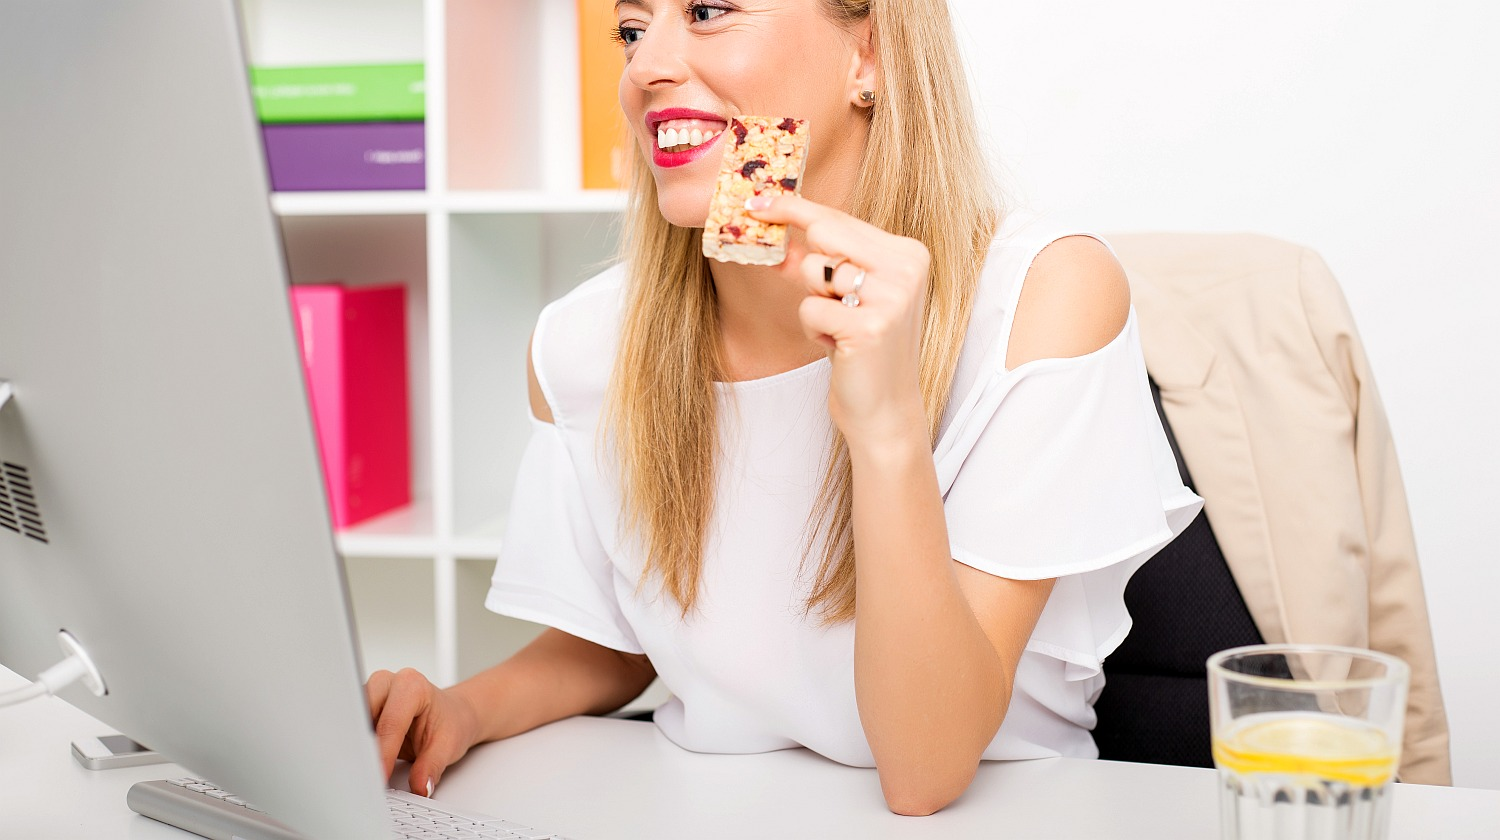 Feature | Woman eating protein bar at the office | Tasty Alkaline Recipes To Make At Home